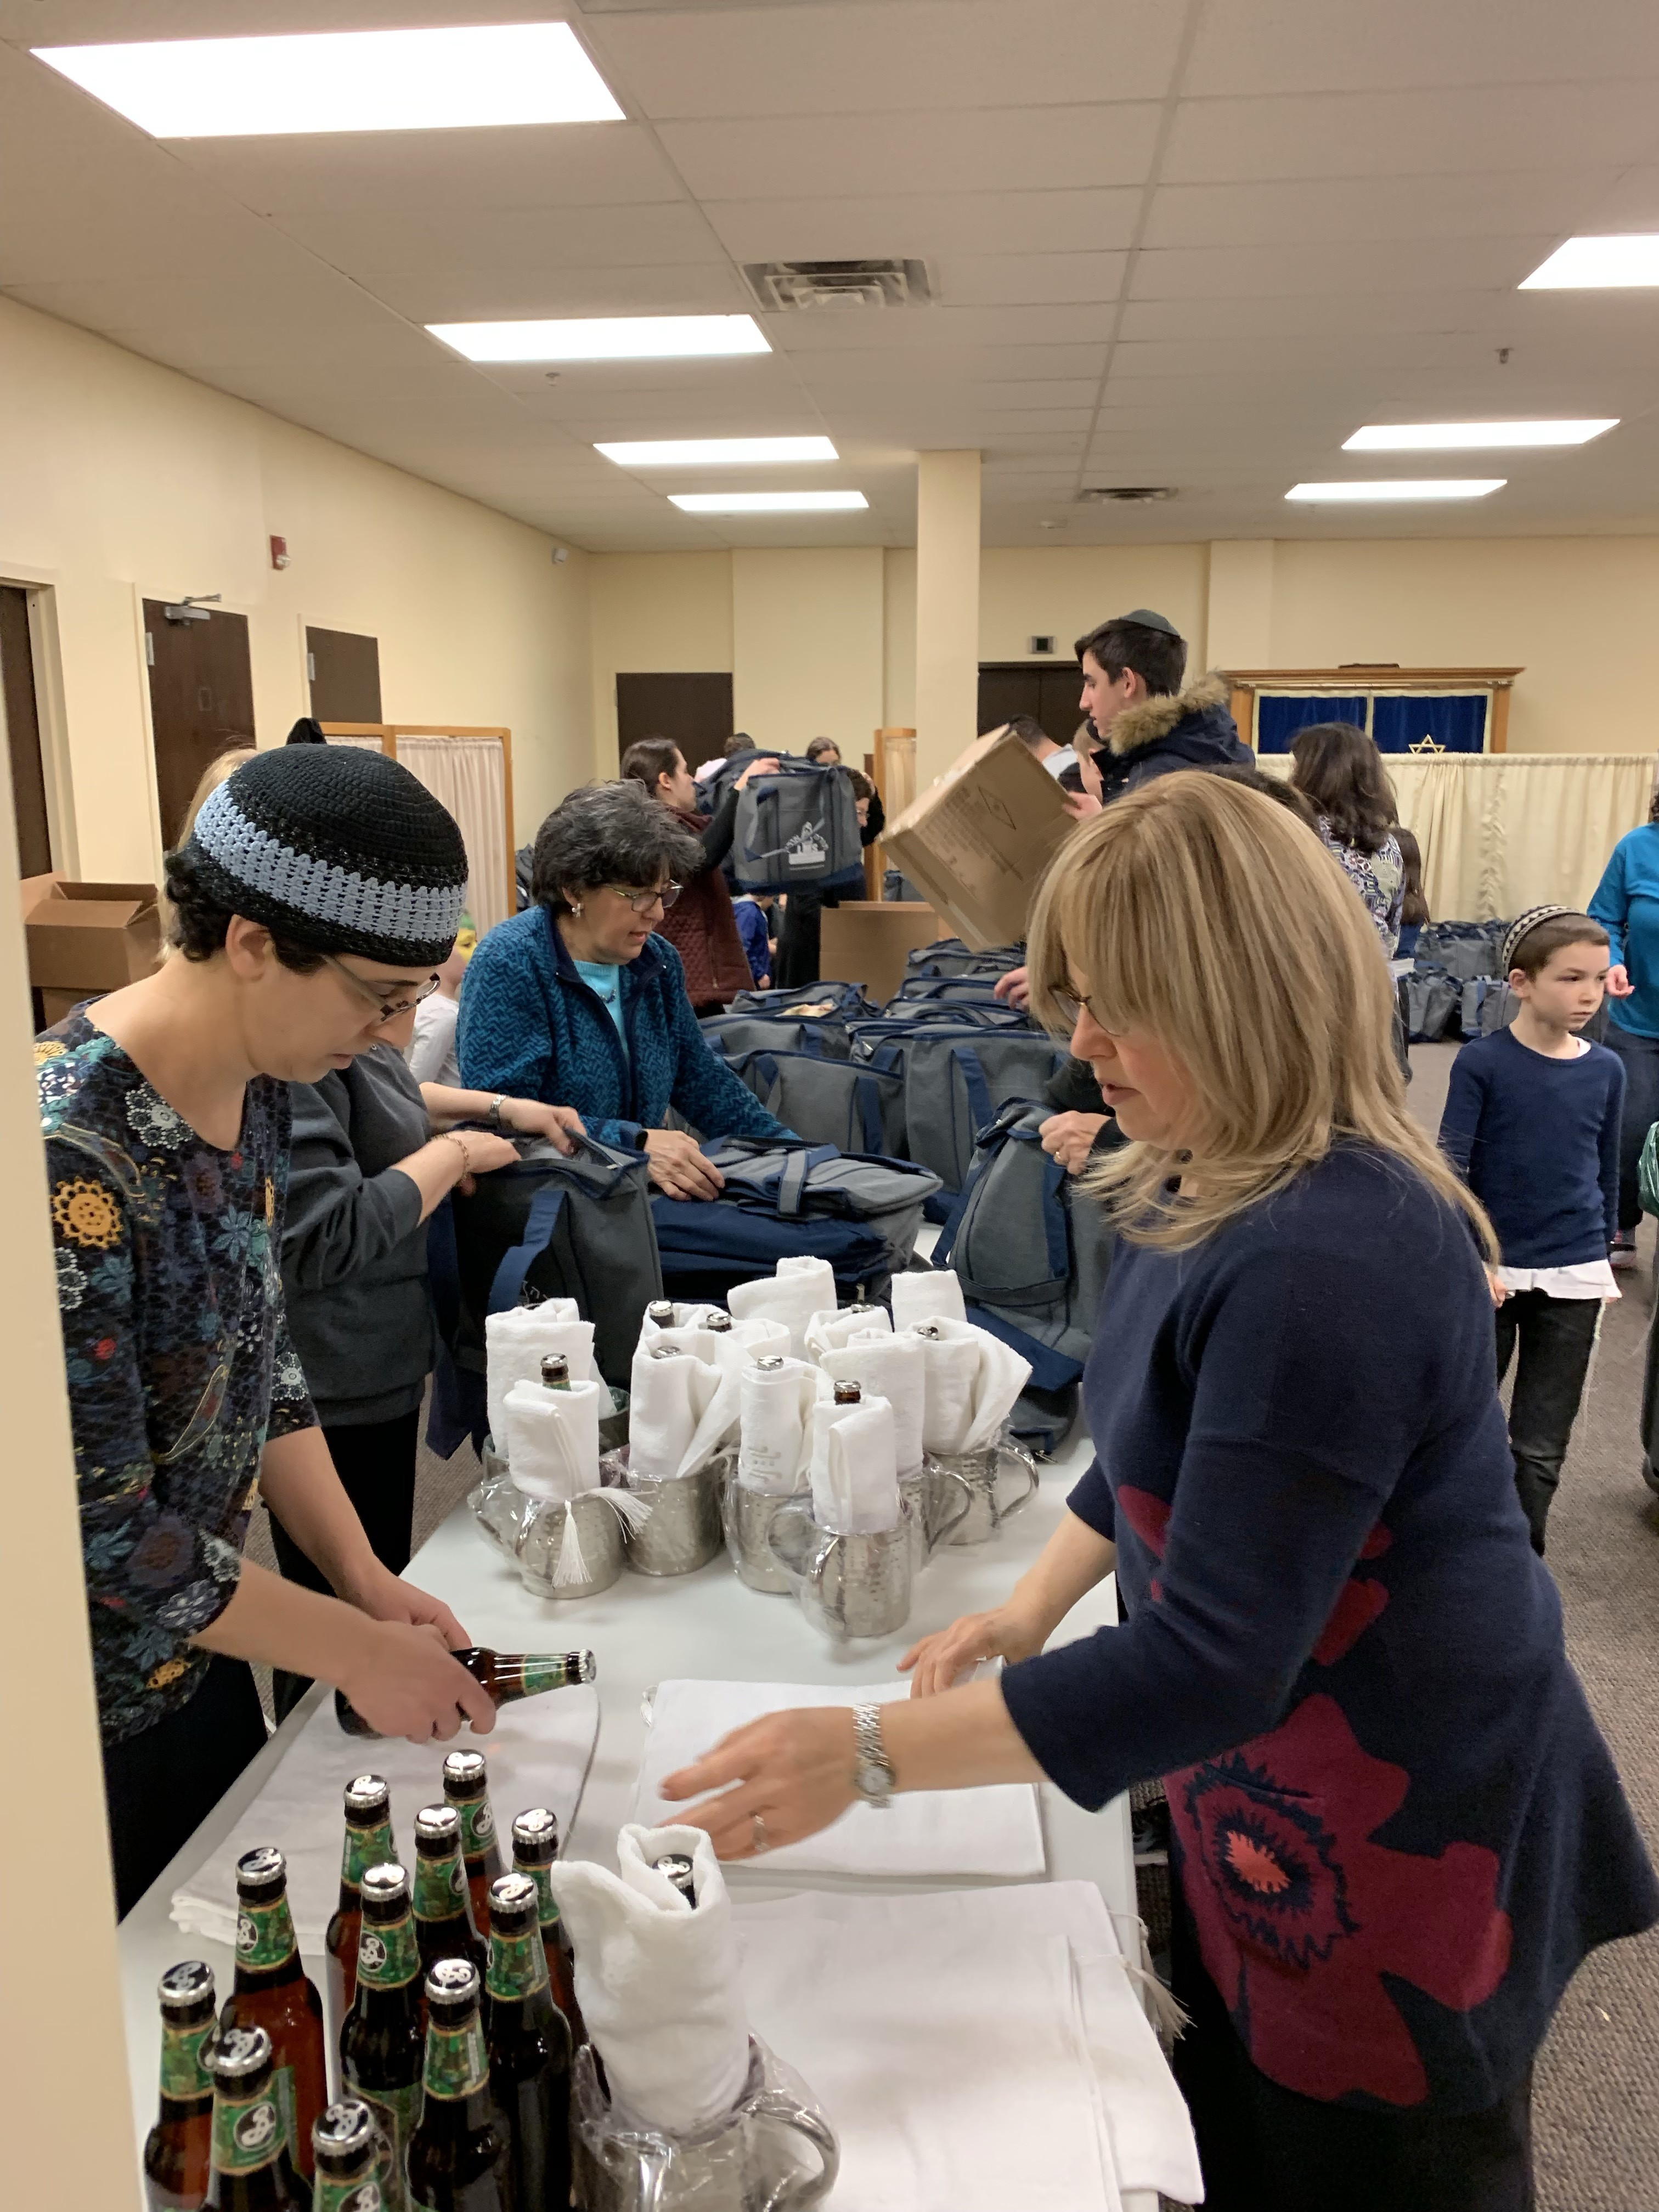 """<a href=""""https://www.lowermerionsynagogue.org/form/Office%20info""""                                     target="""""""">                                                                 <span class=""""slider_title"""">                                     GET INVOLVED                                </span>                                                                 </a>                                                                                                                                                                                       <span class=""""slider_description"""">Learn about opportunities to volunteer or otherwise get involved with Lower Merion Synagogue. All members and ideas are welcome.</span>                                                                                     <a href=""""https://www.lowermerionsynagogue.org/form/Office%20info"""" class=""""slider_link""""                             target="""""""">                             Reach Out                            </a>"""